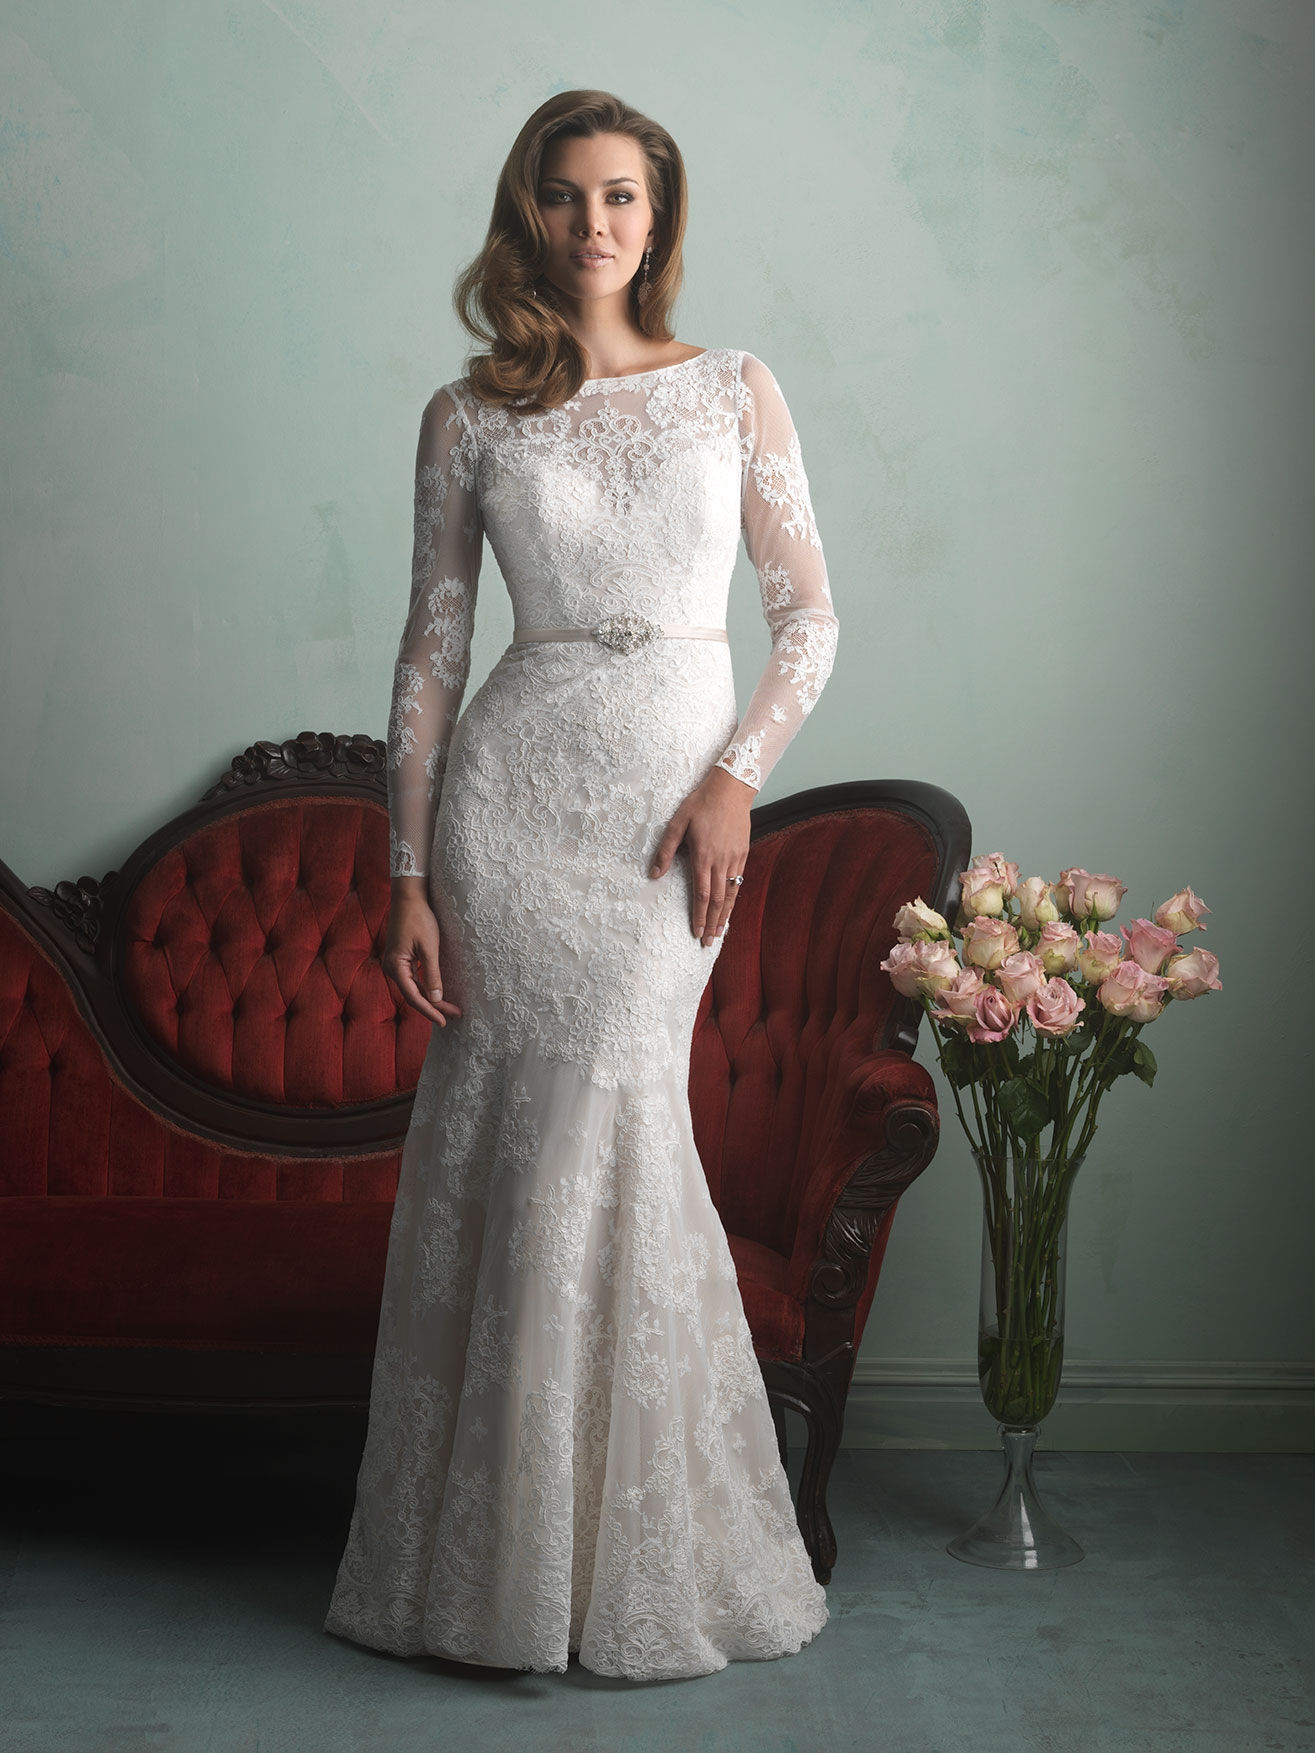 Allure Bridals 9167 wedding gown available at LuLu's Bridal Boutique in Dallas, Texas